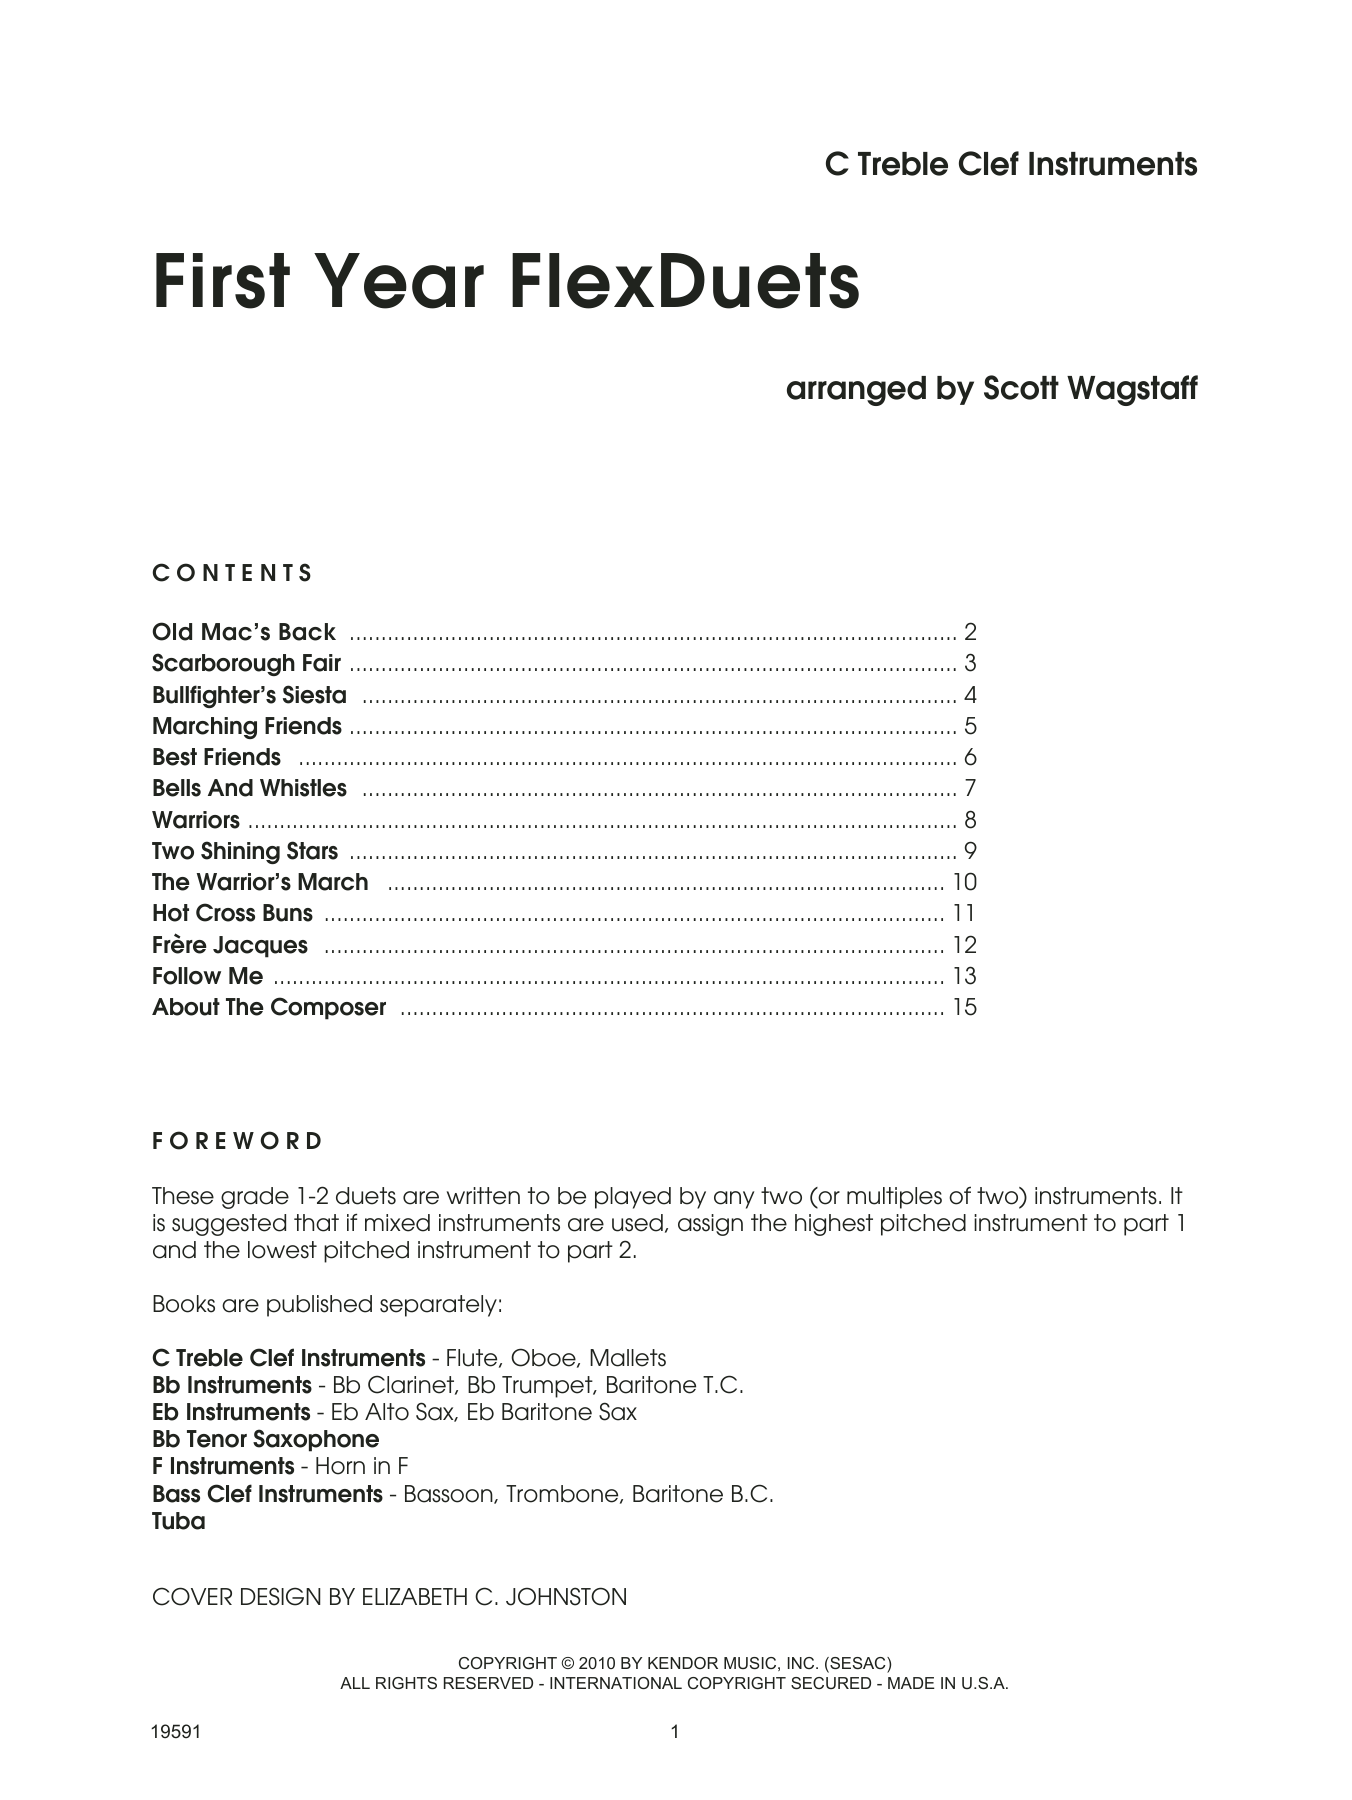 Scott Wagstaff First Year FlexDuets - C Treble Clef Instruments sheet music notes and chords. Download Printable PDF.